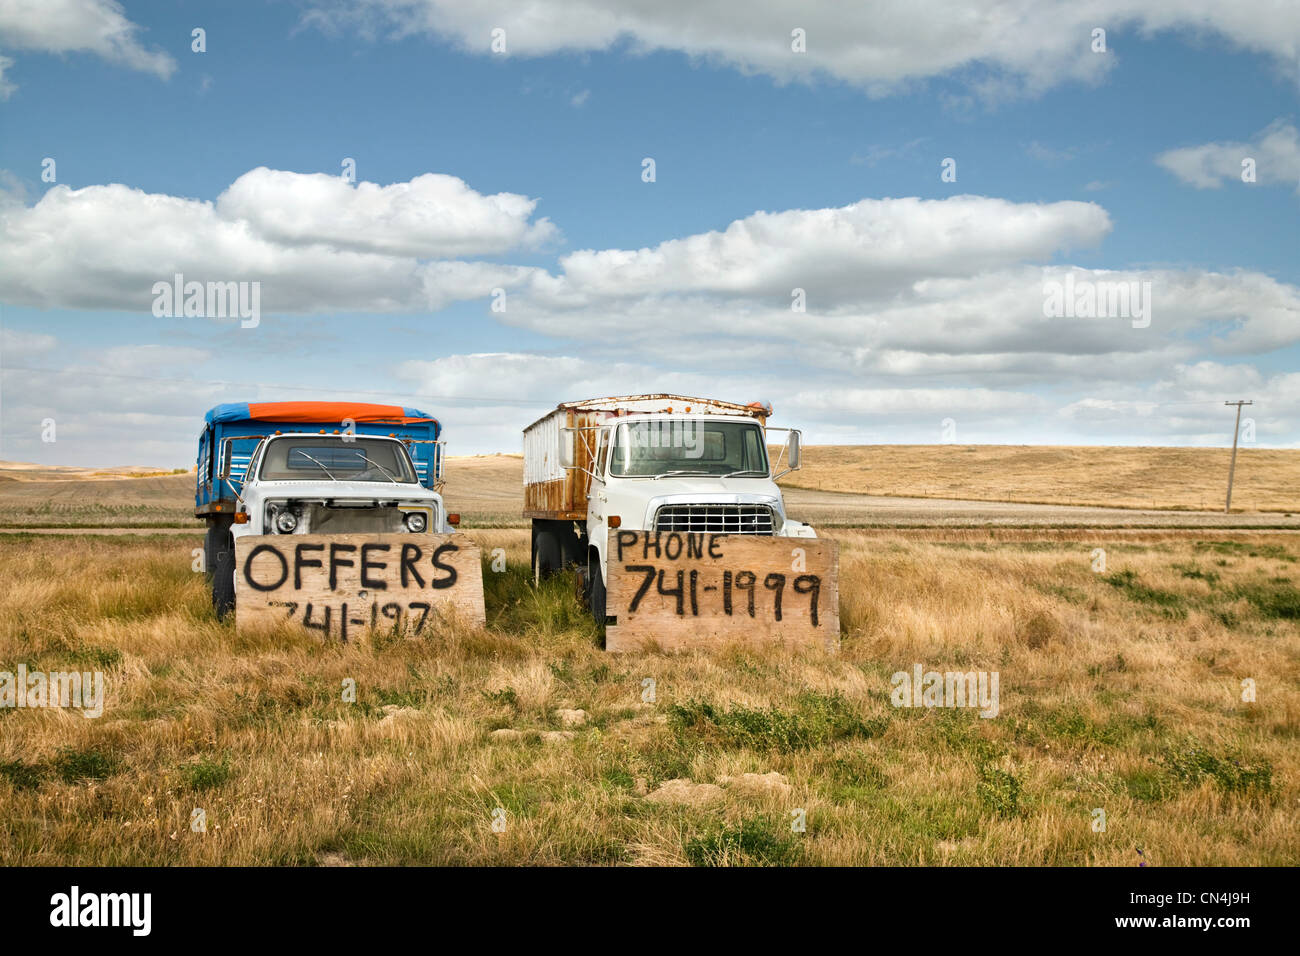 Old trucks for sale in a field Stock Photo